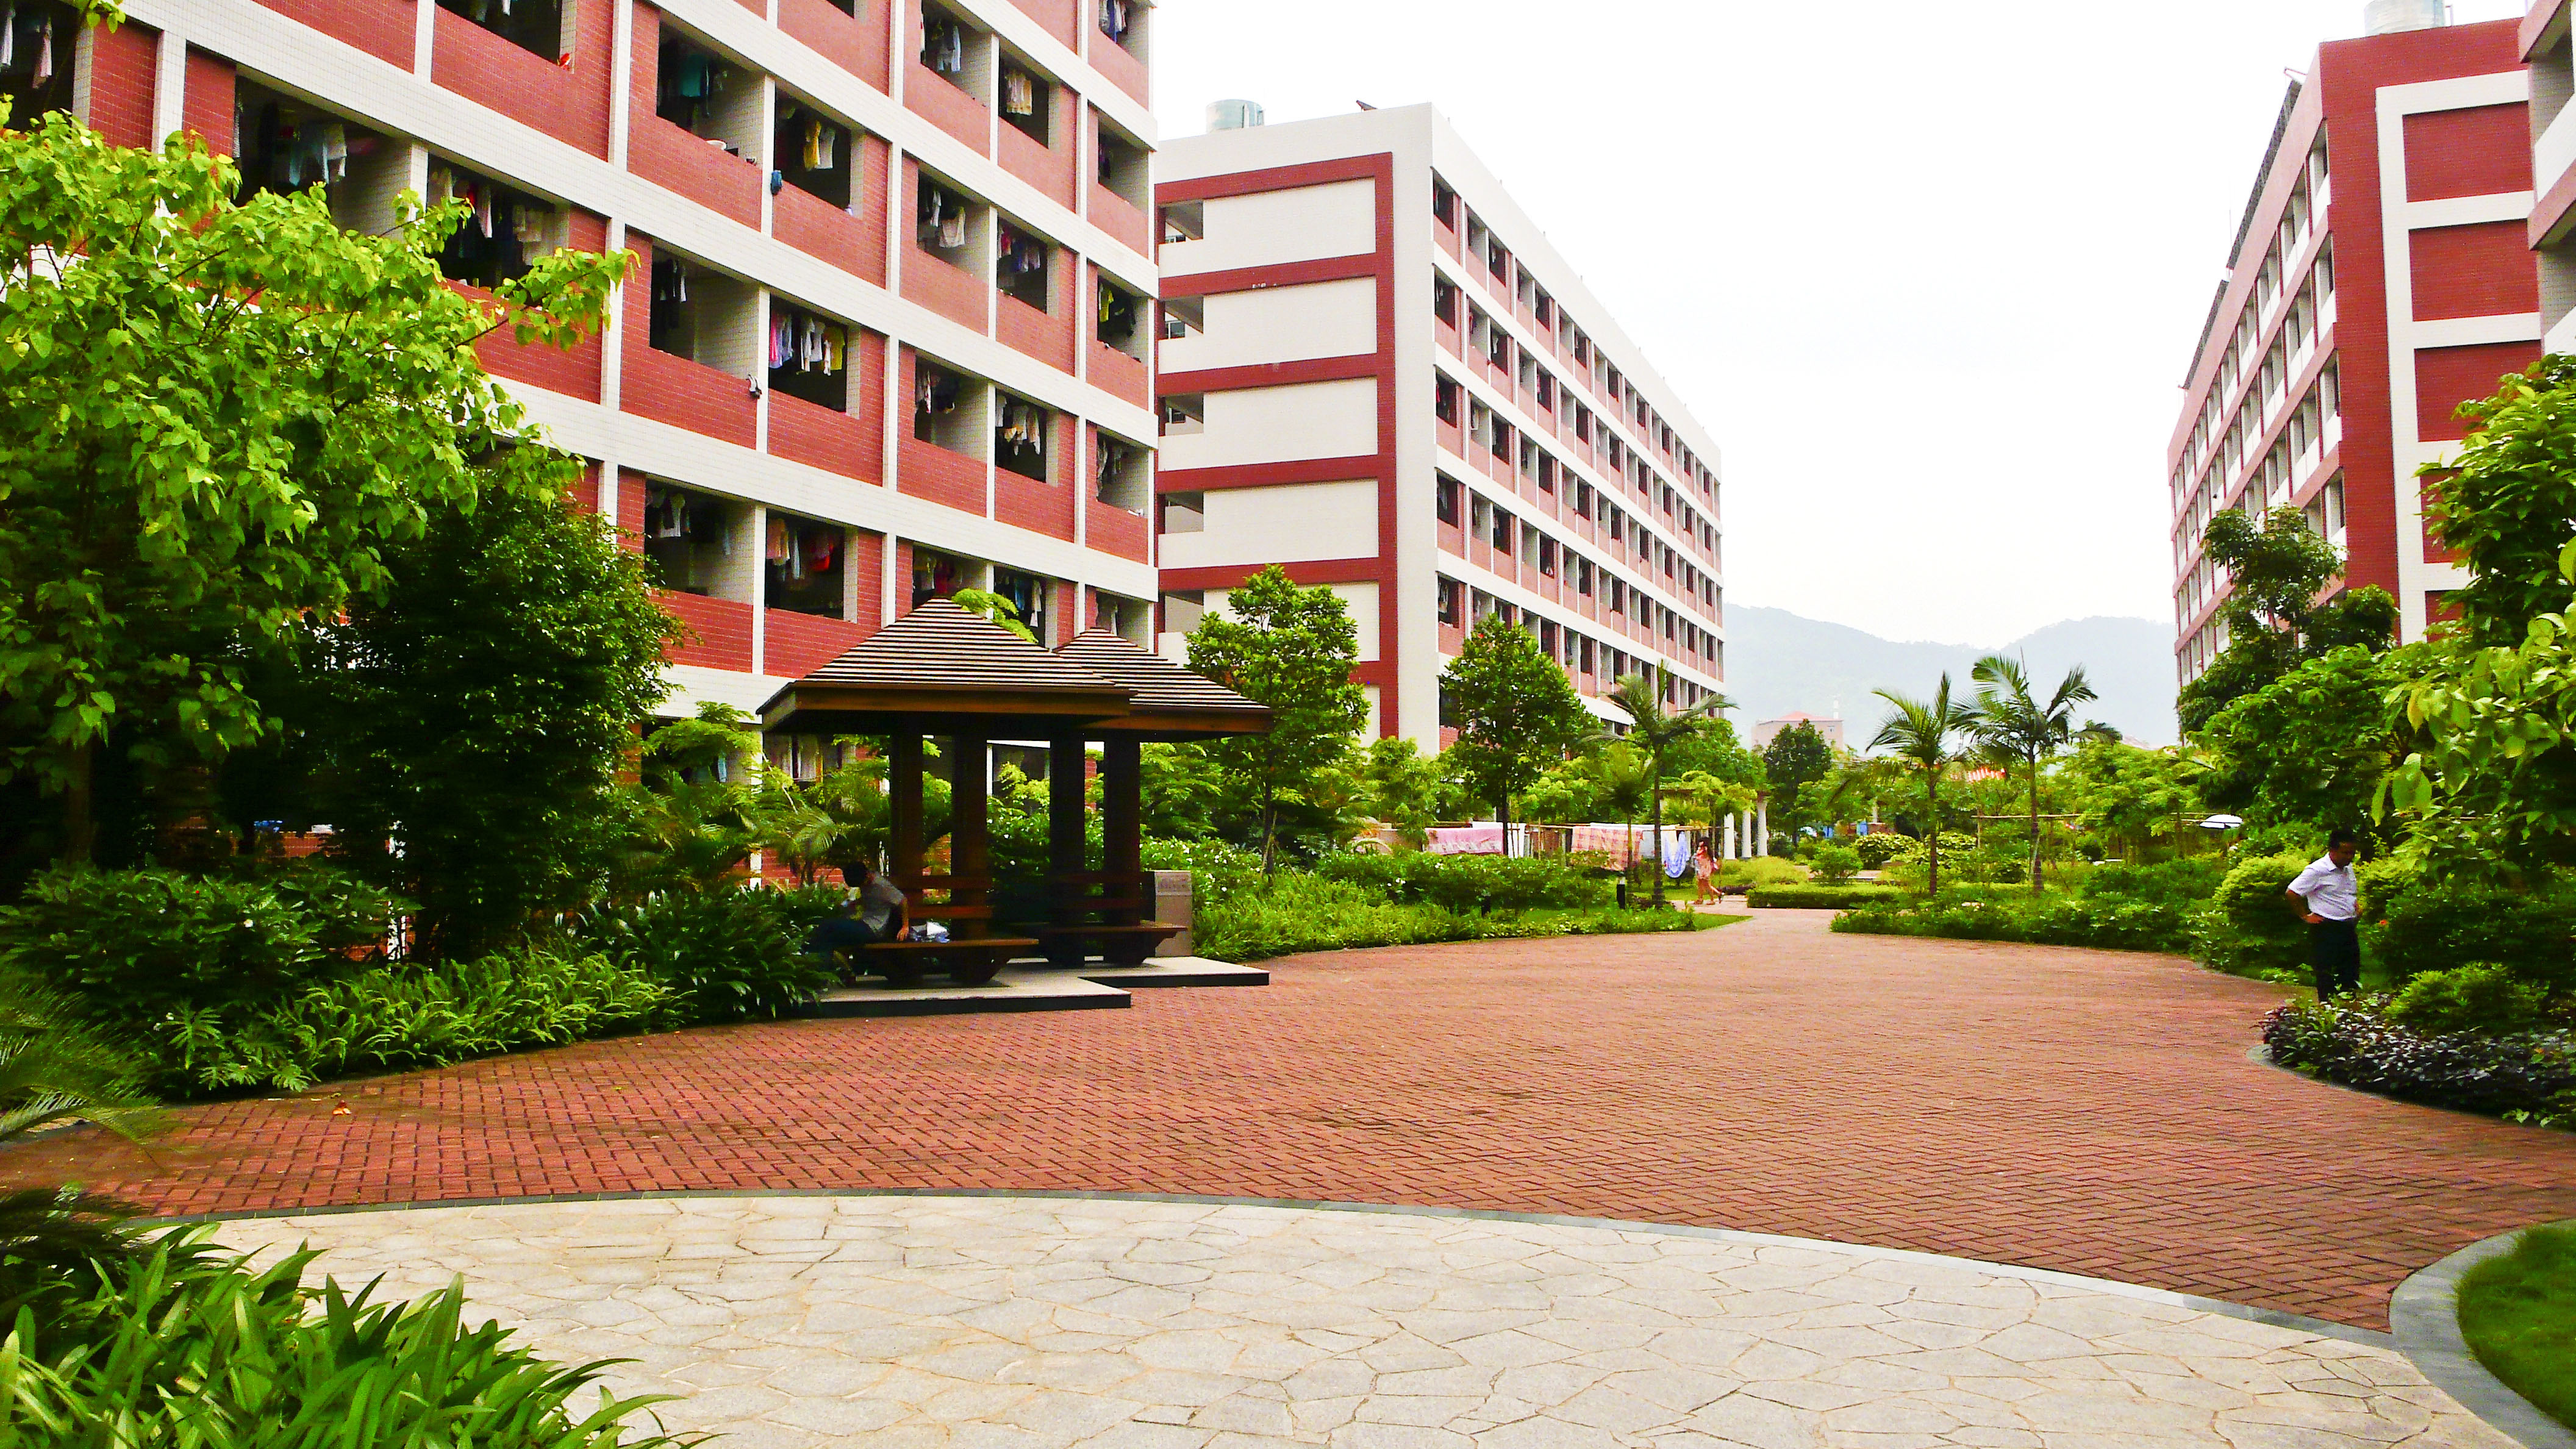 Guangdong University of Finance